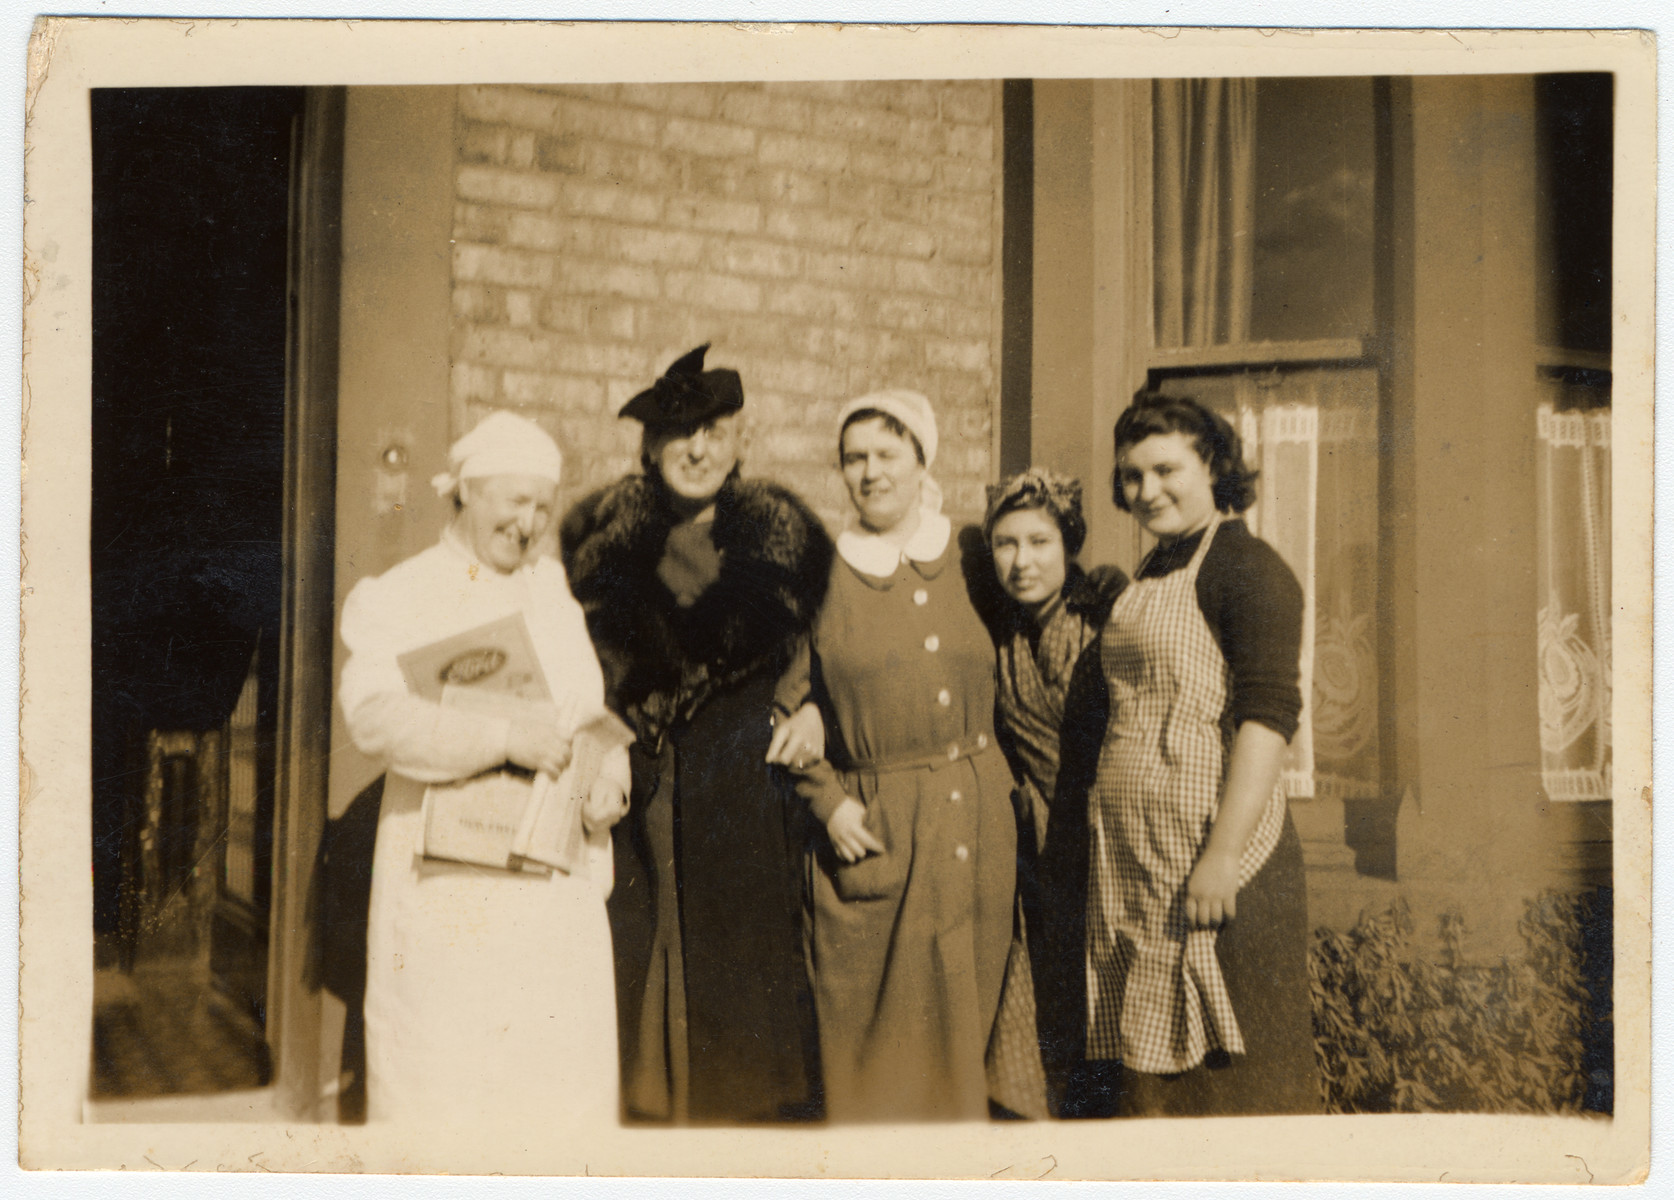 Women working in Windermere hostel pose together with a representative of the Newcastle Jewish Community who sponsored the Kindertransport.   Pictured from left to right are: Alice Urbach, Mrs. Wilkes from the Newcastle Jewish Community, Paula Sieber, Ilse Gross and unknown.